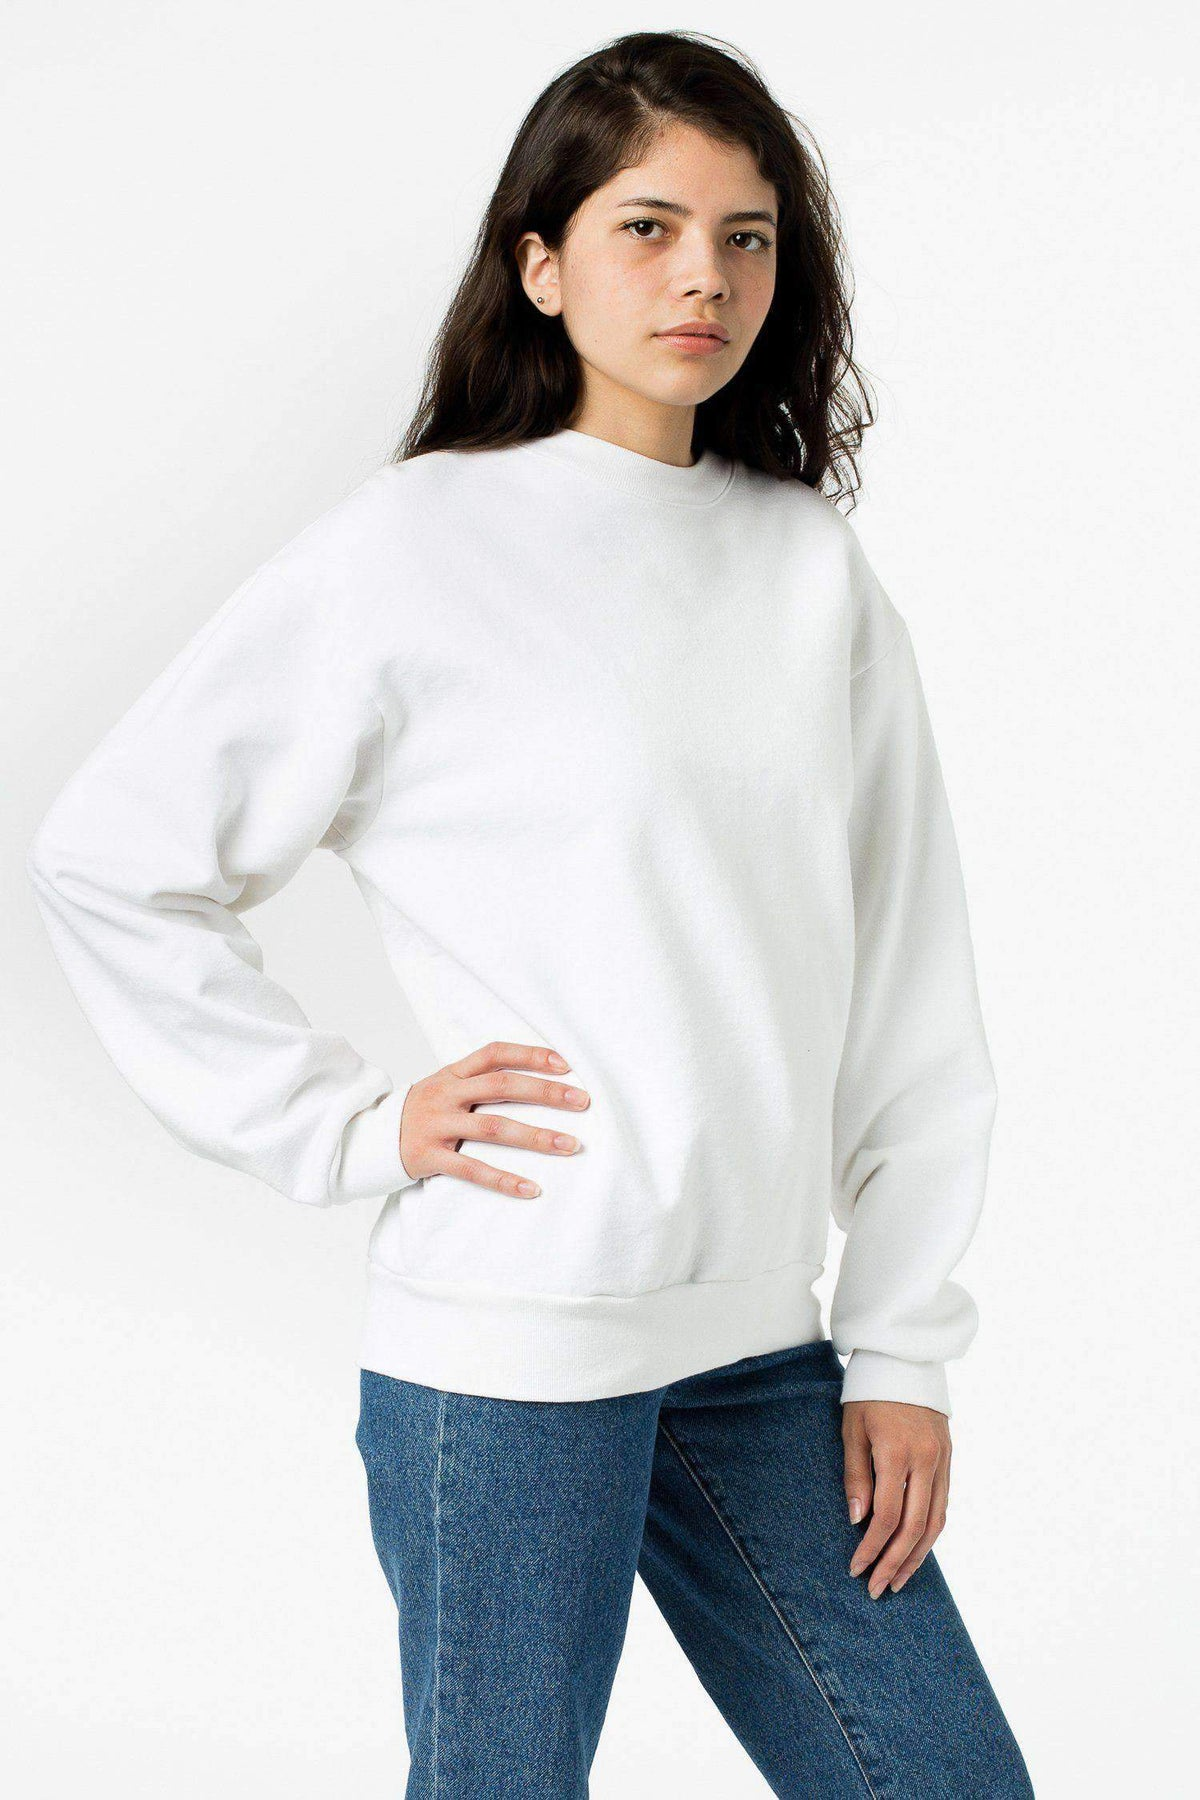 HF07 Mix - 14oz. Heavy Fleece Pullover Crewneck Sweatshirt Sweatshirt Los Angeles Apparel White XS